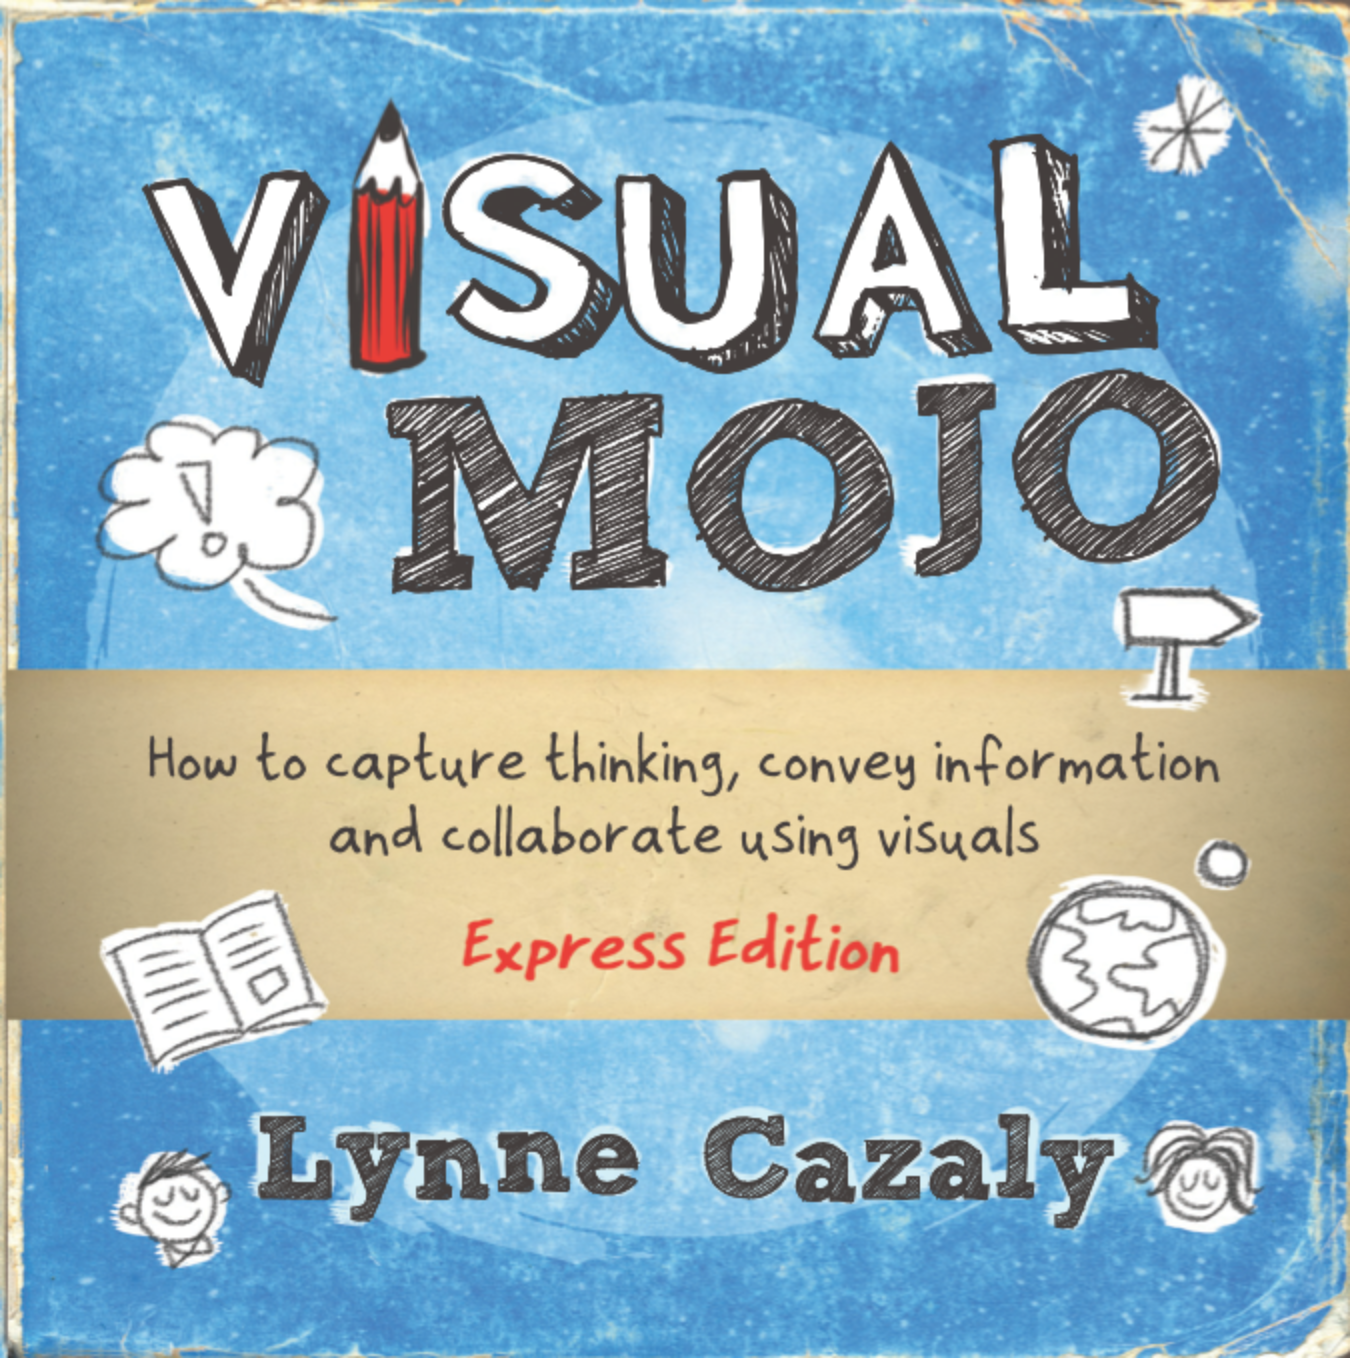 1:1 Visual Skills Workshop via Zoom : 3 hours